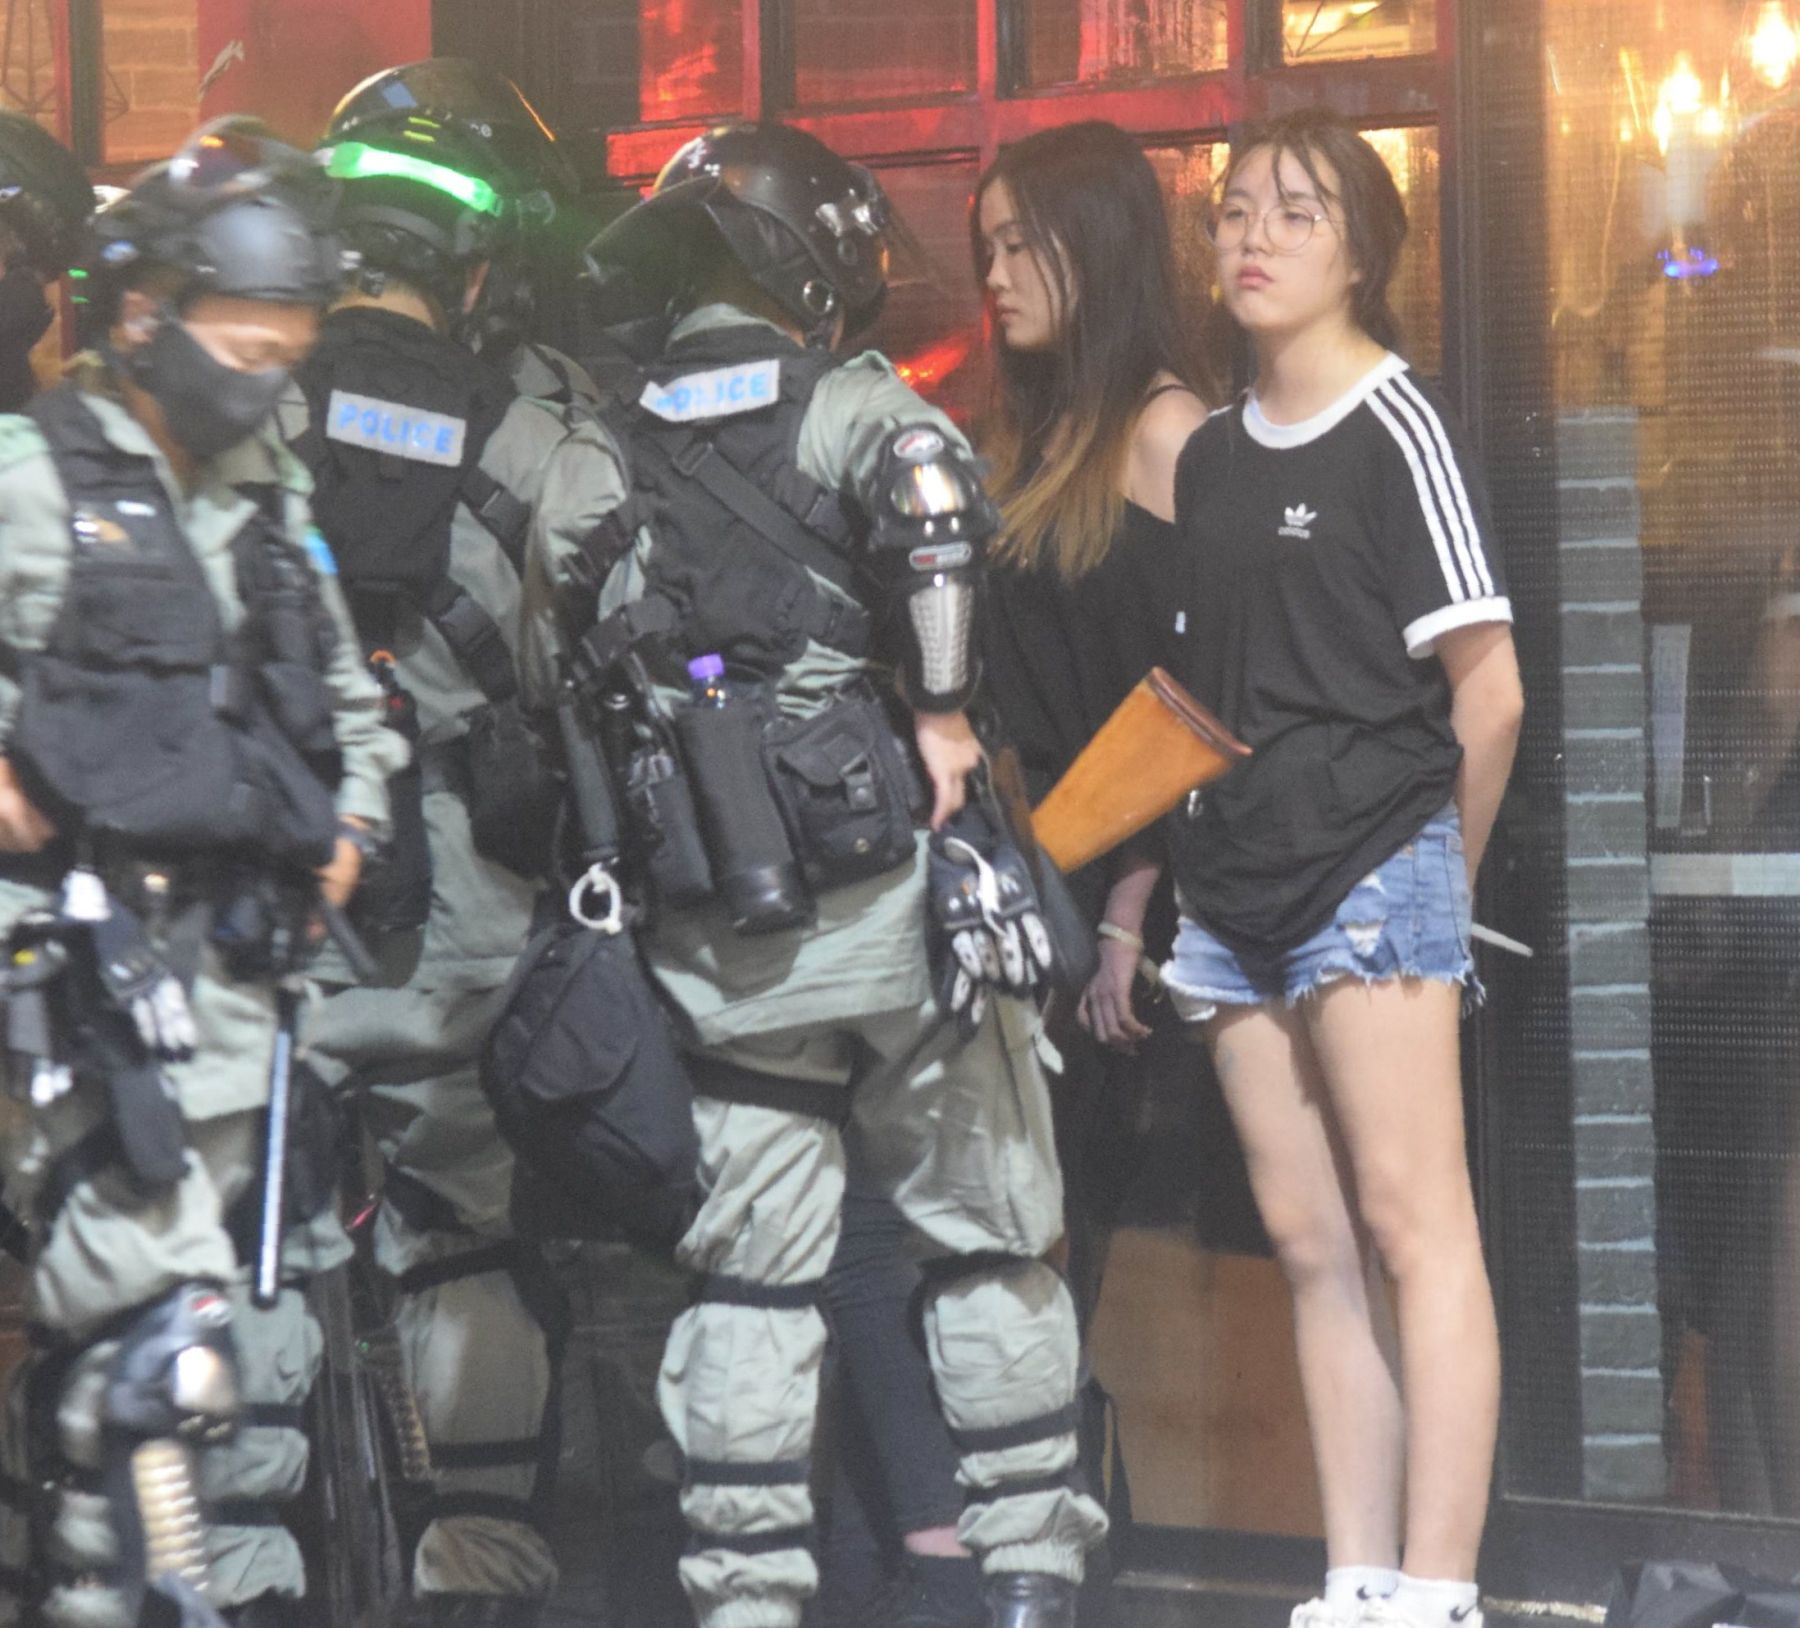 Hong Kongs Emergency Ordinance Effectively A Declaration of Martial Law 026